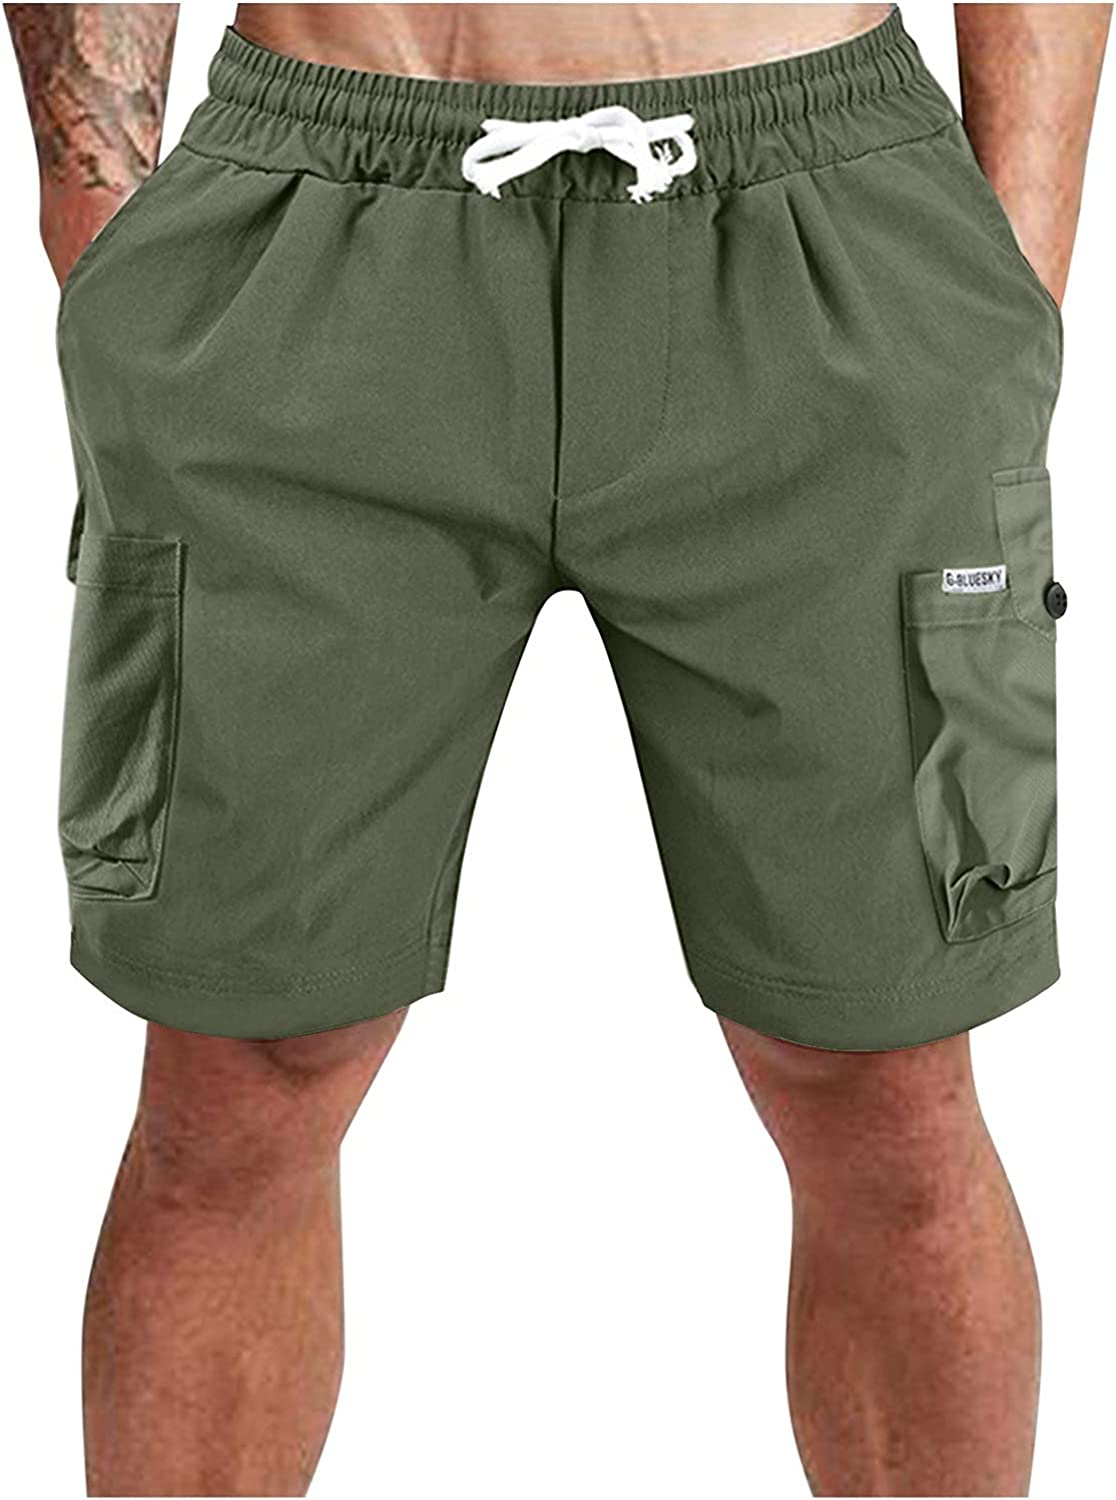 FUNEY Cargo Shorts for Men Relaxed Fit Casual Solid Color Multi Pocket Short Pants Lightweight Summer Cargo Work Shorts